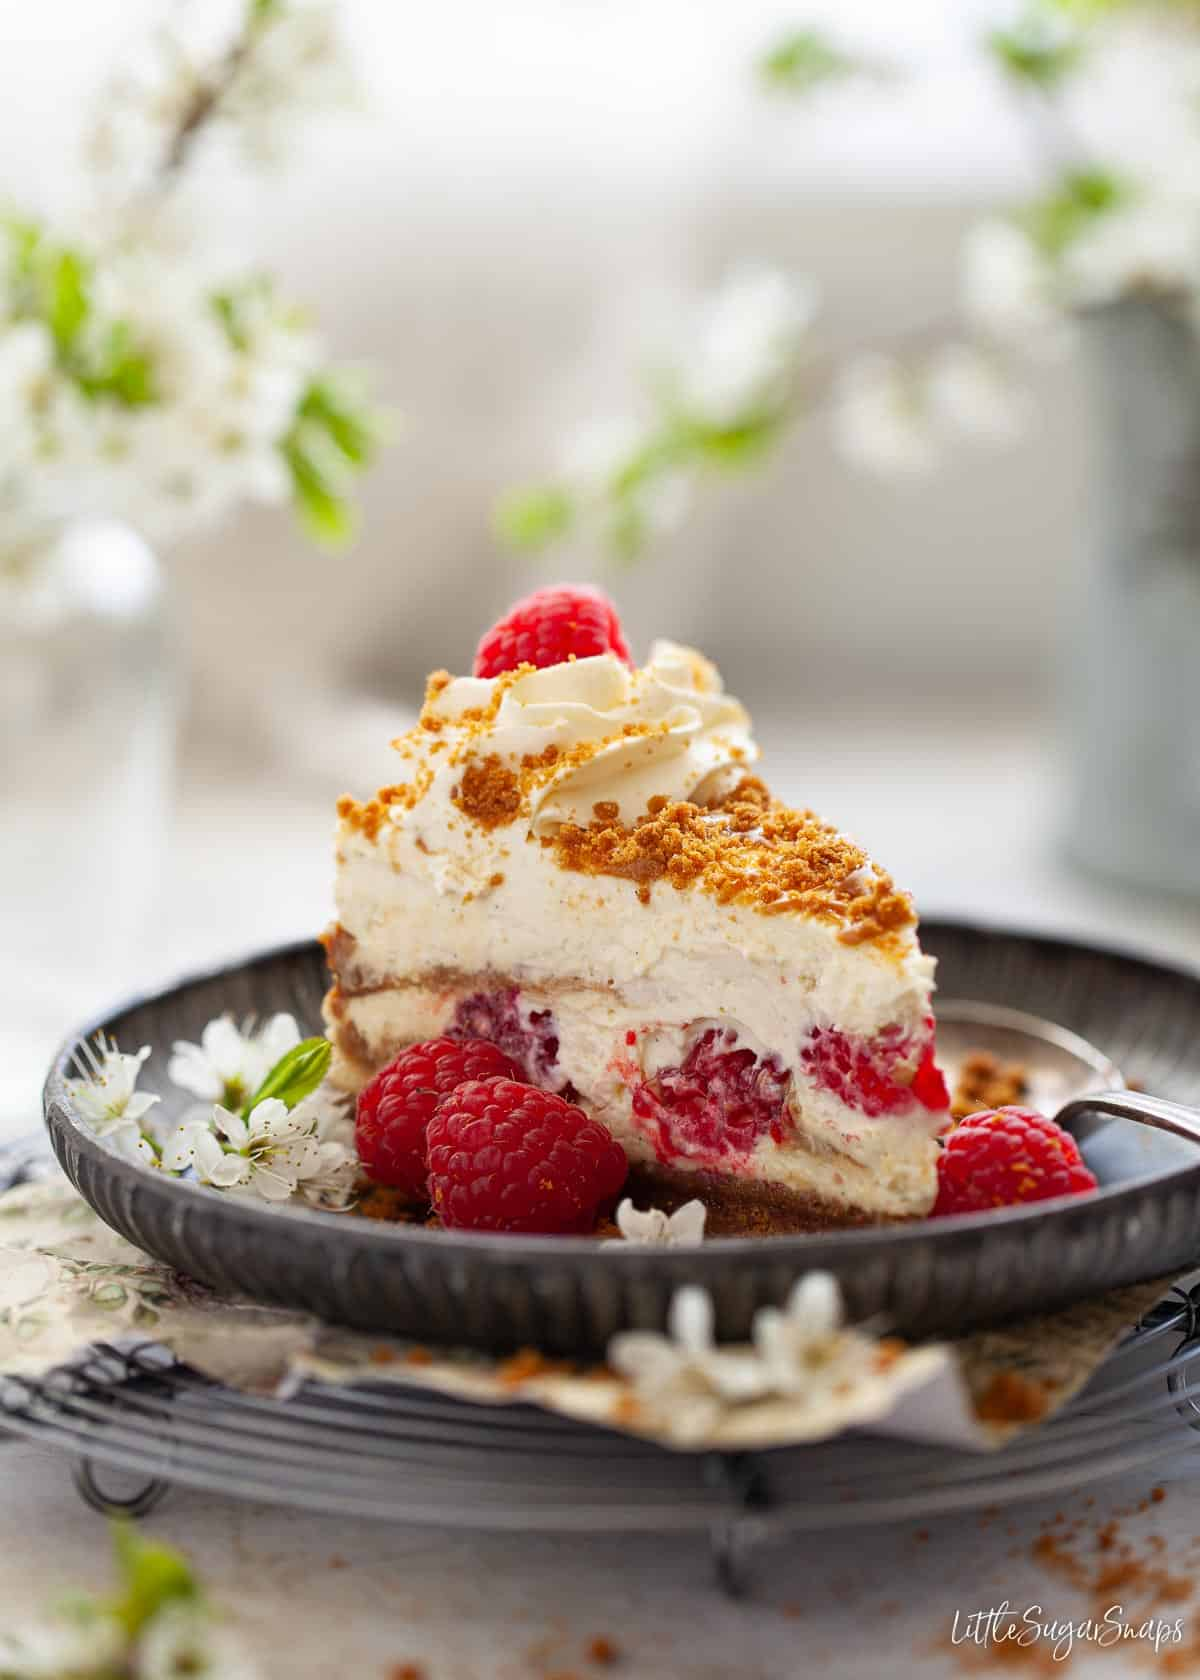 A slice of raspberry and biscoff cheesecake and a plate